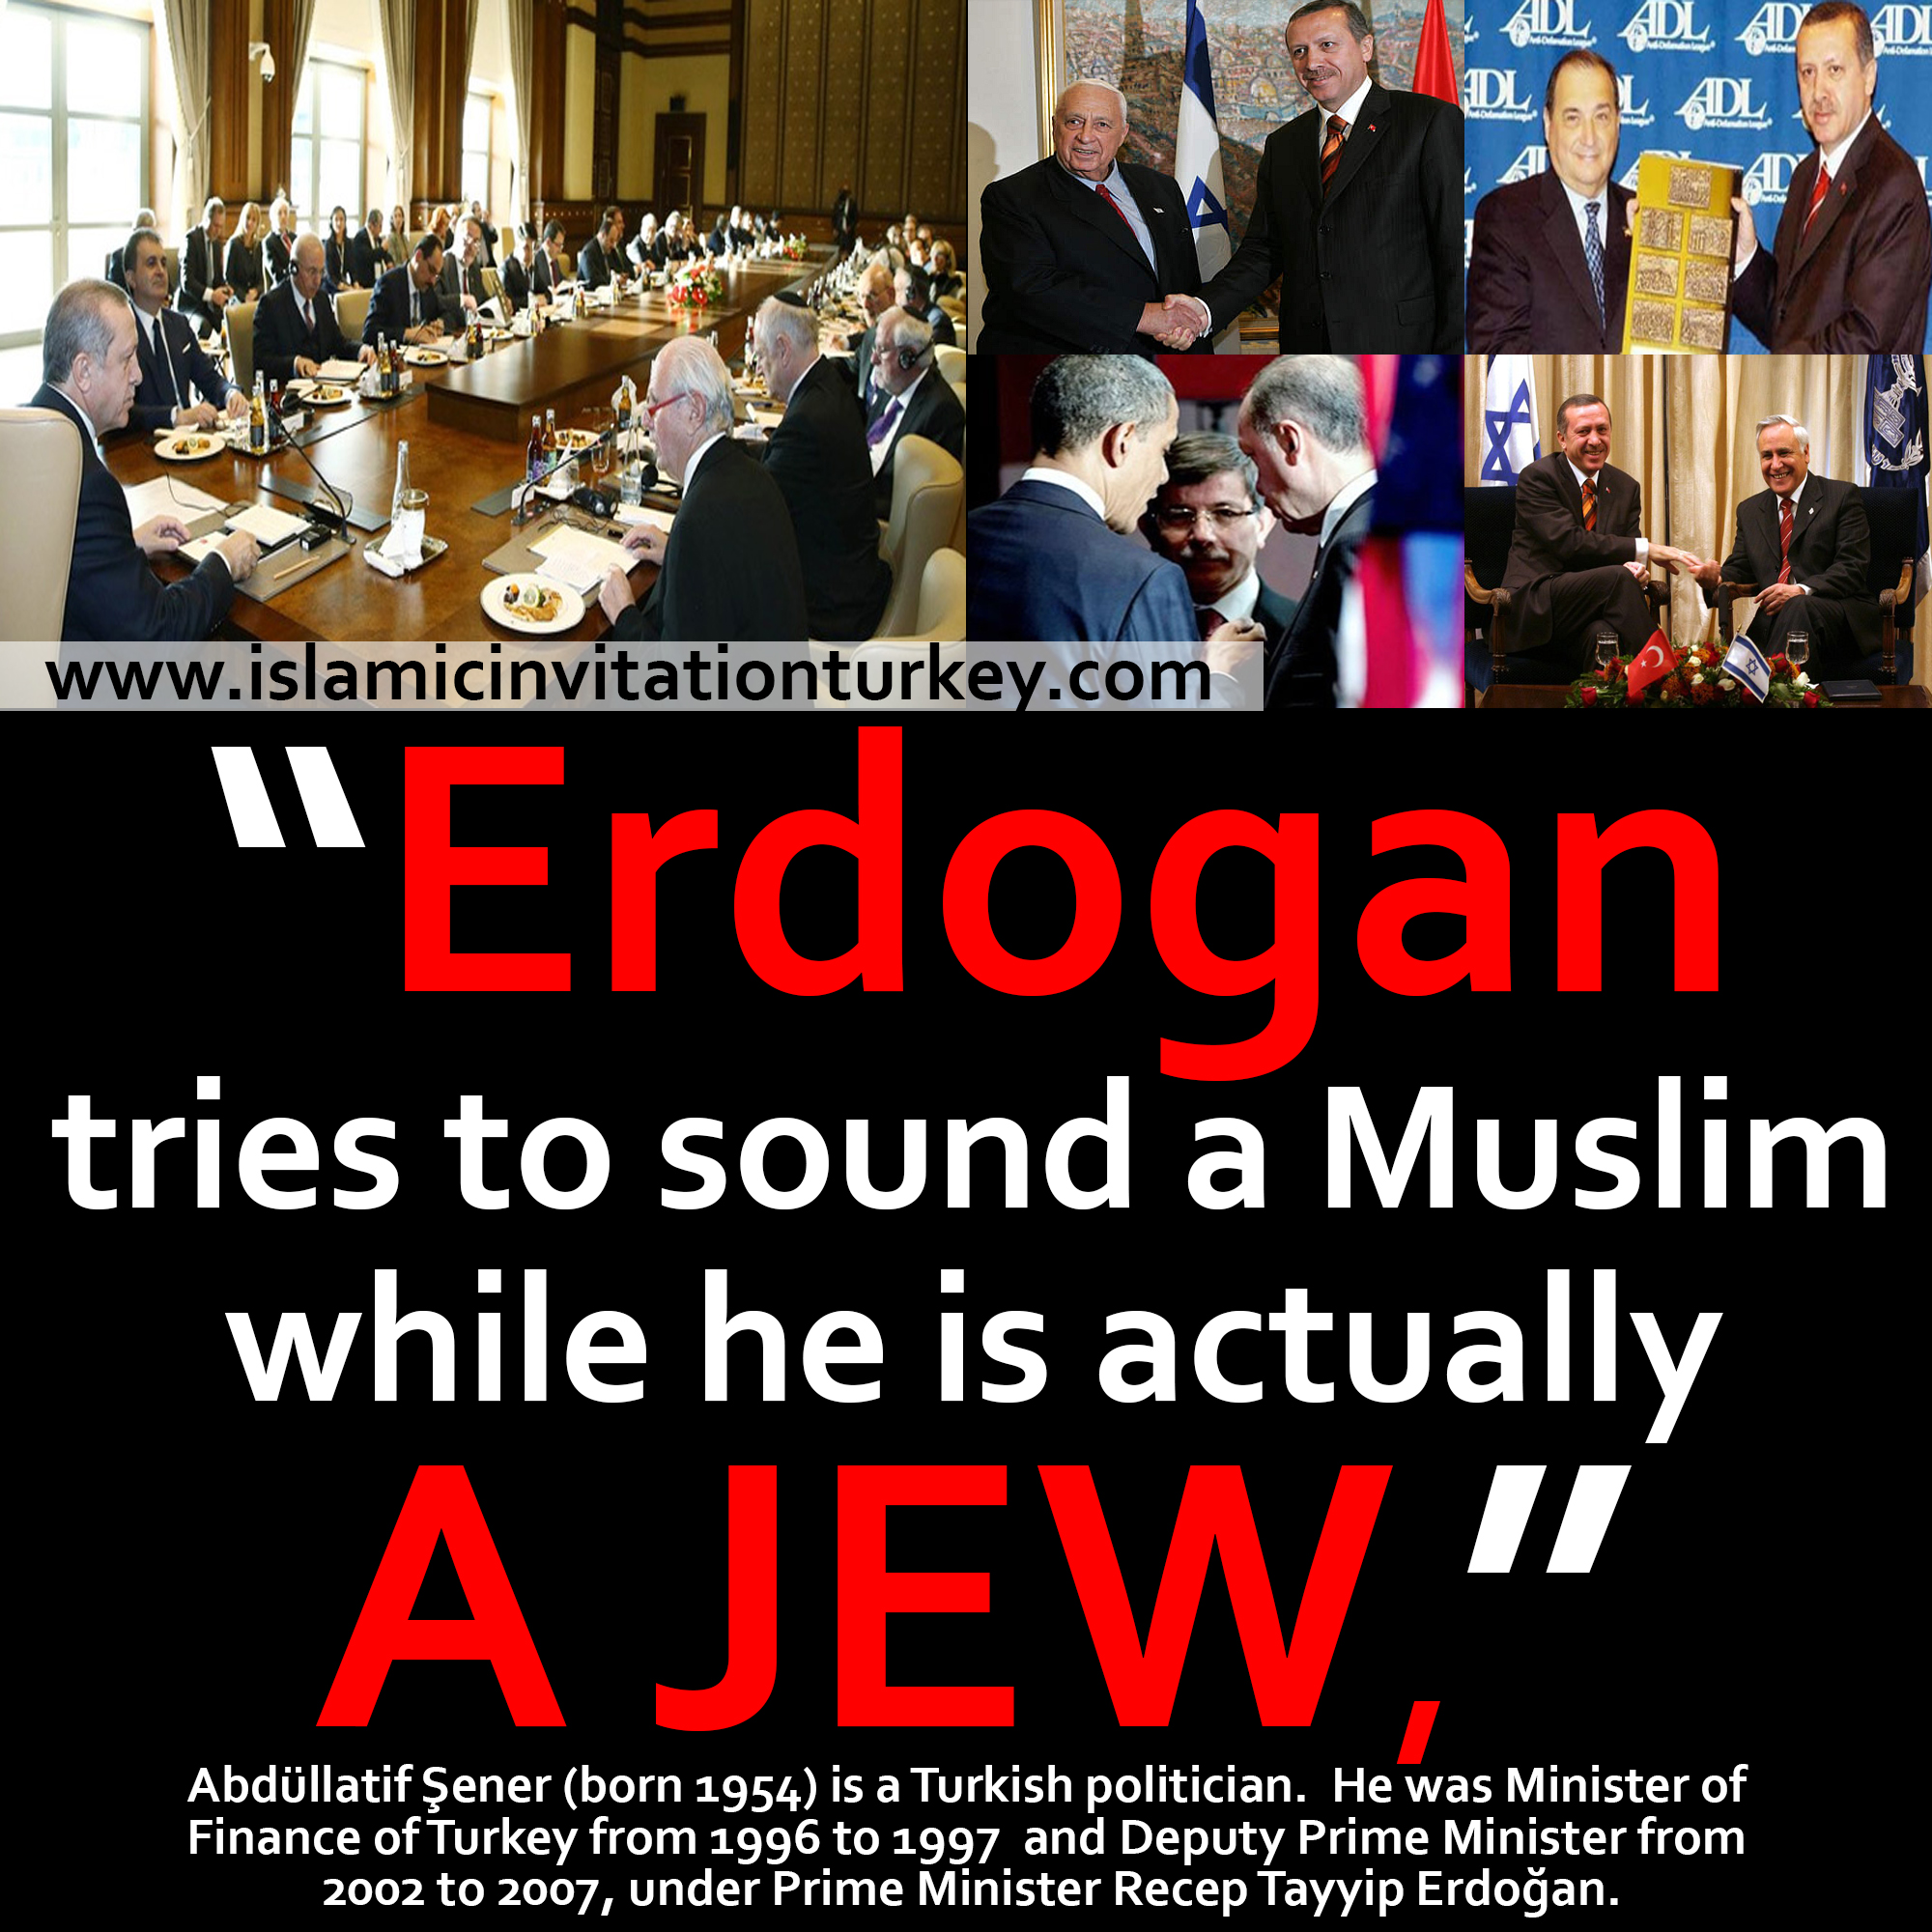 erdogan is a jew